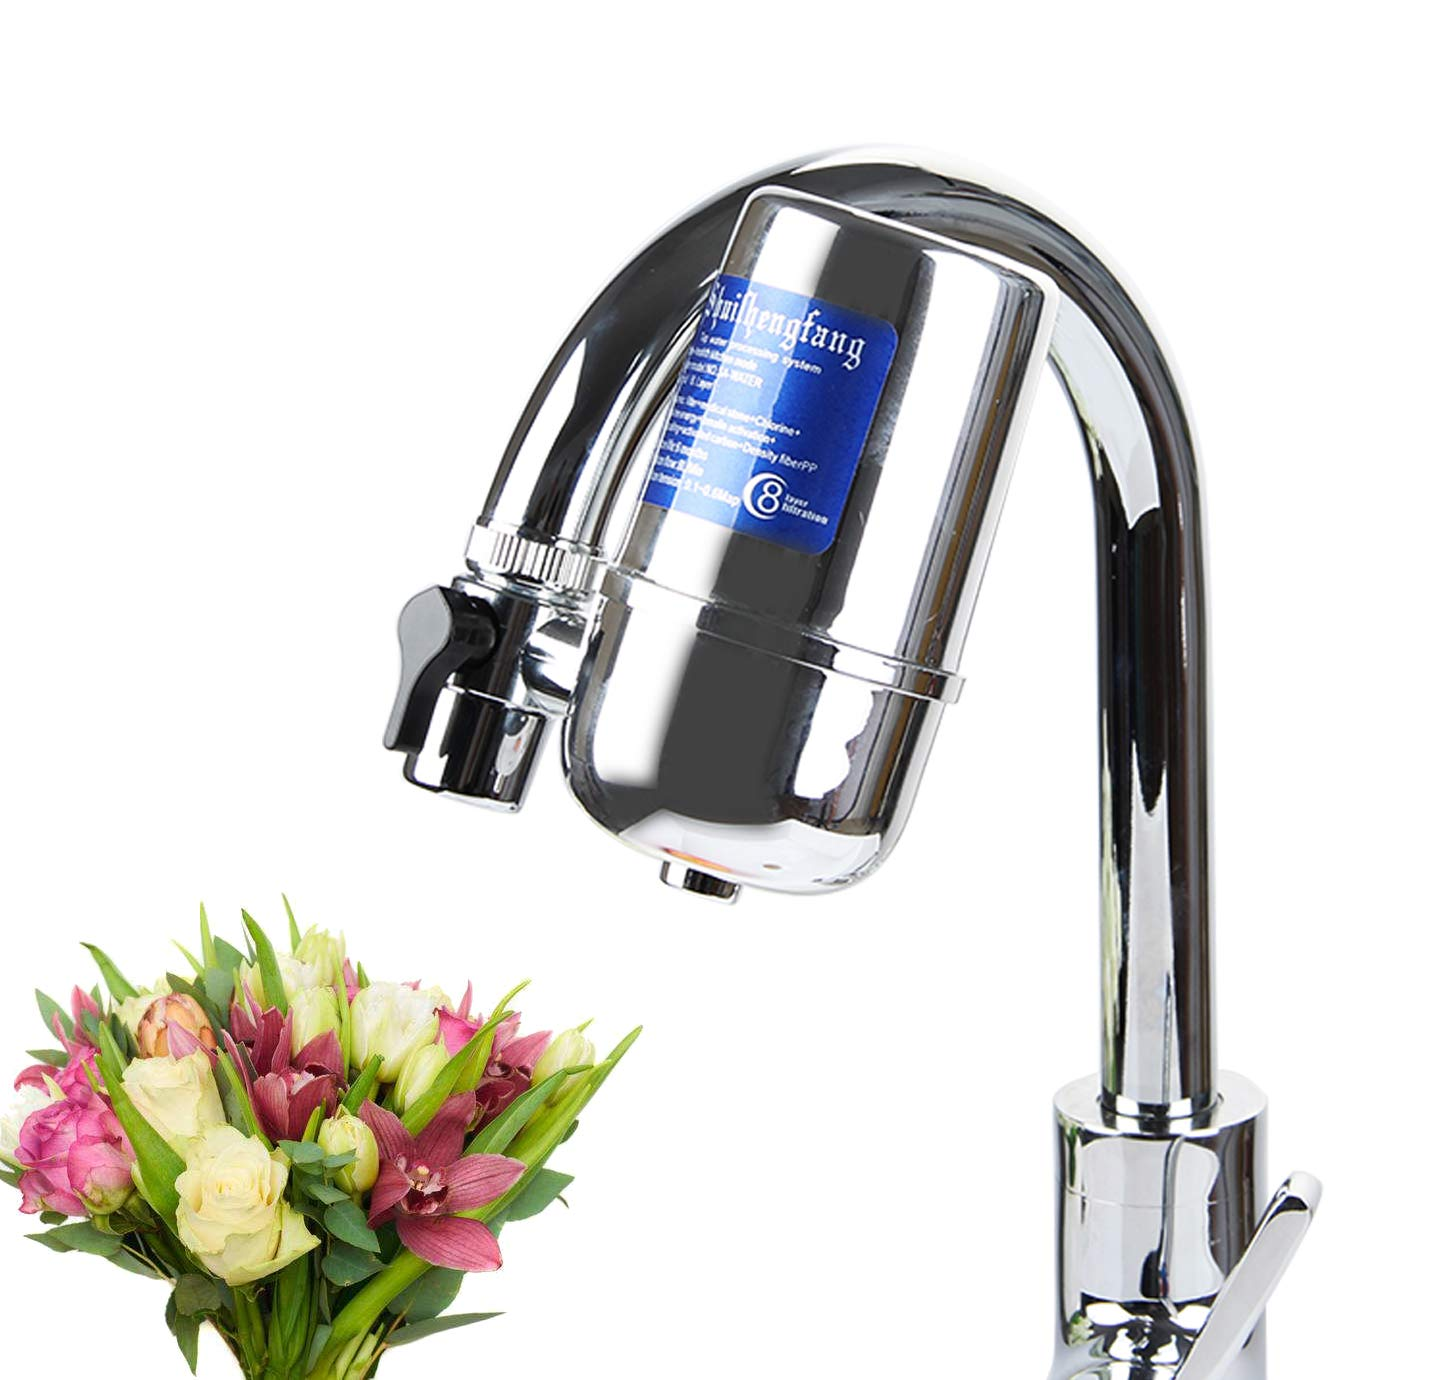 Faucet Filter, Drinking Water Filter, Water Purifier for Kitchen,(Faucet Water Filter)